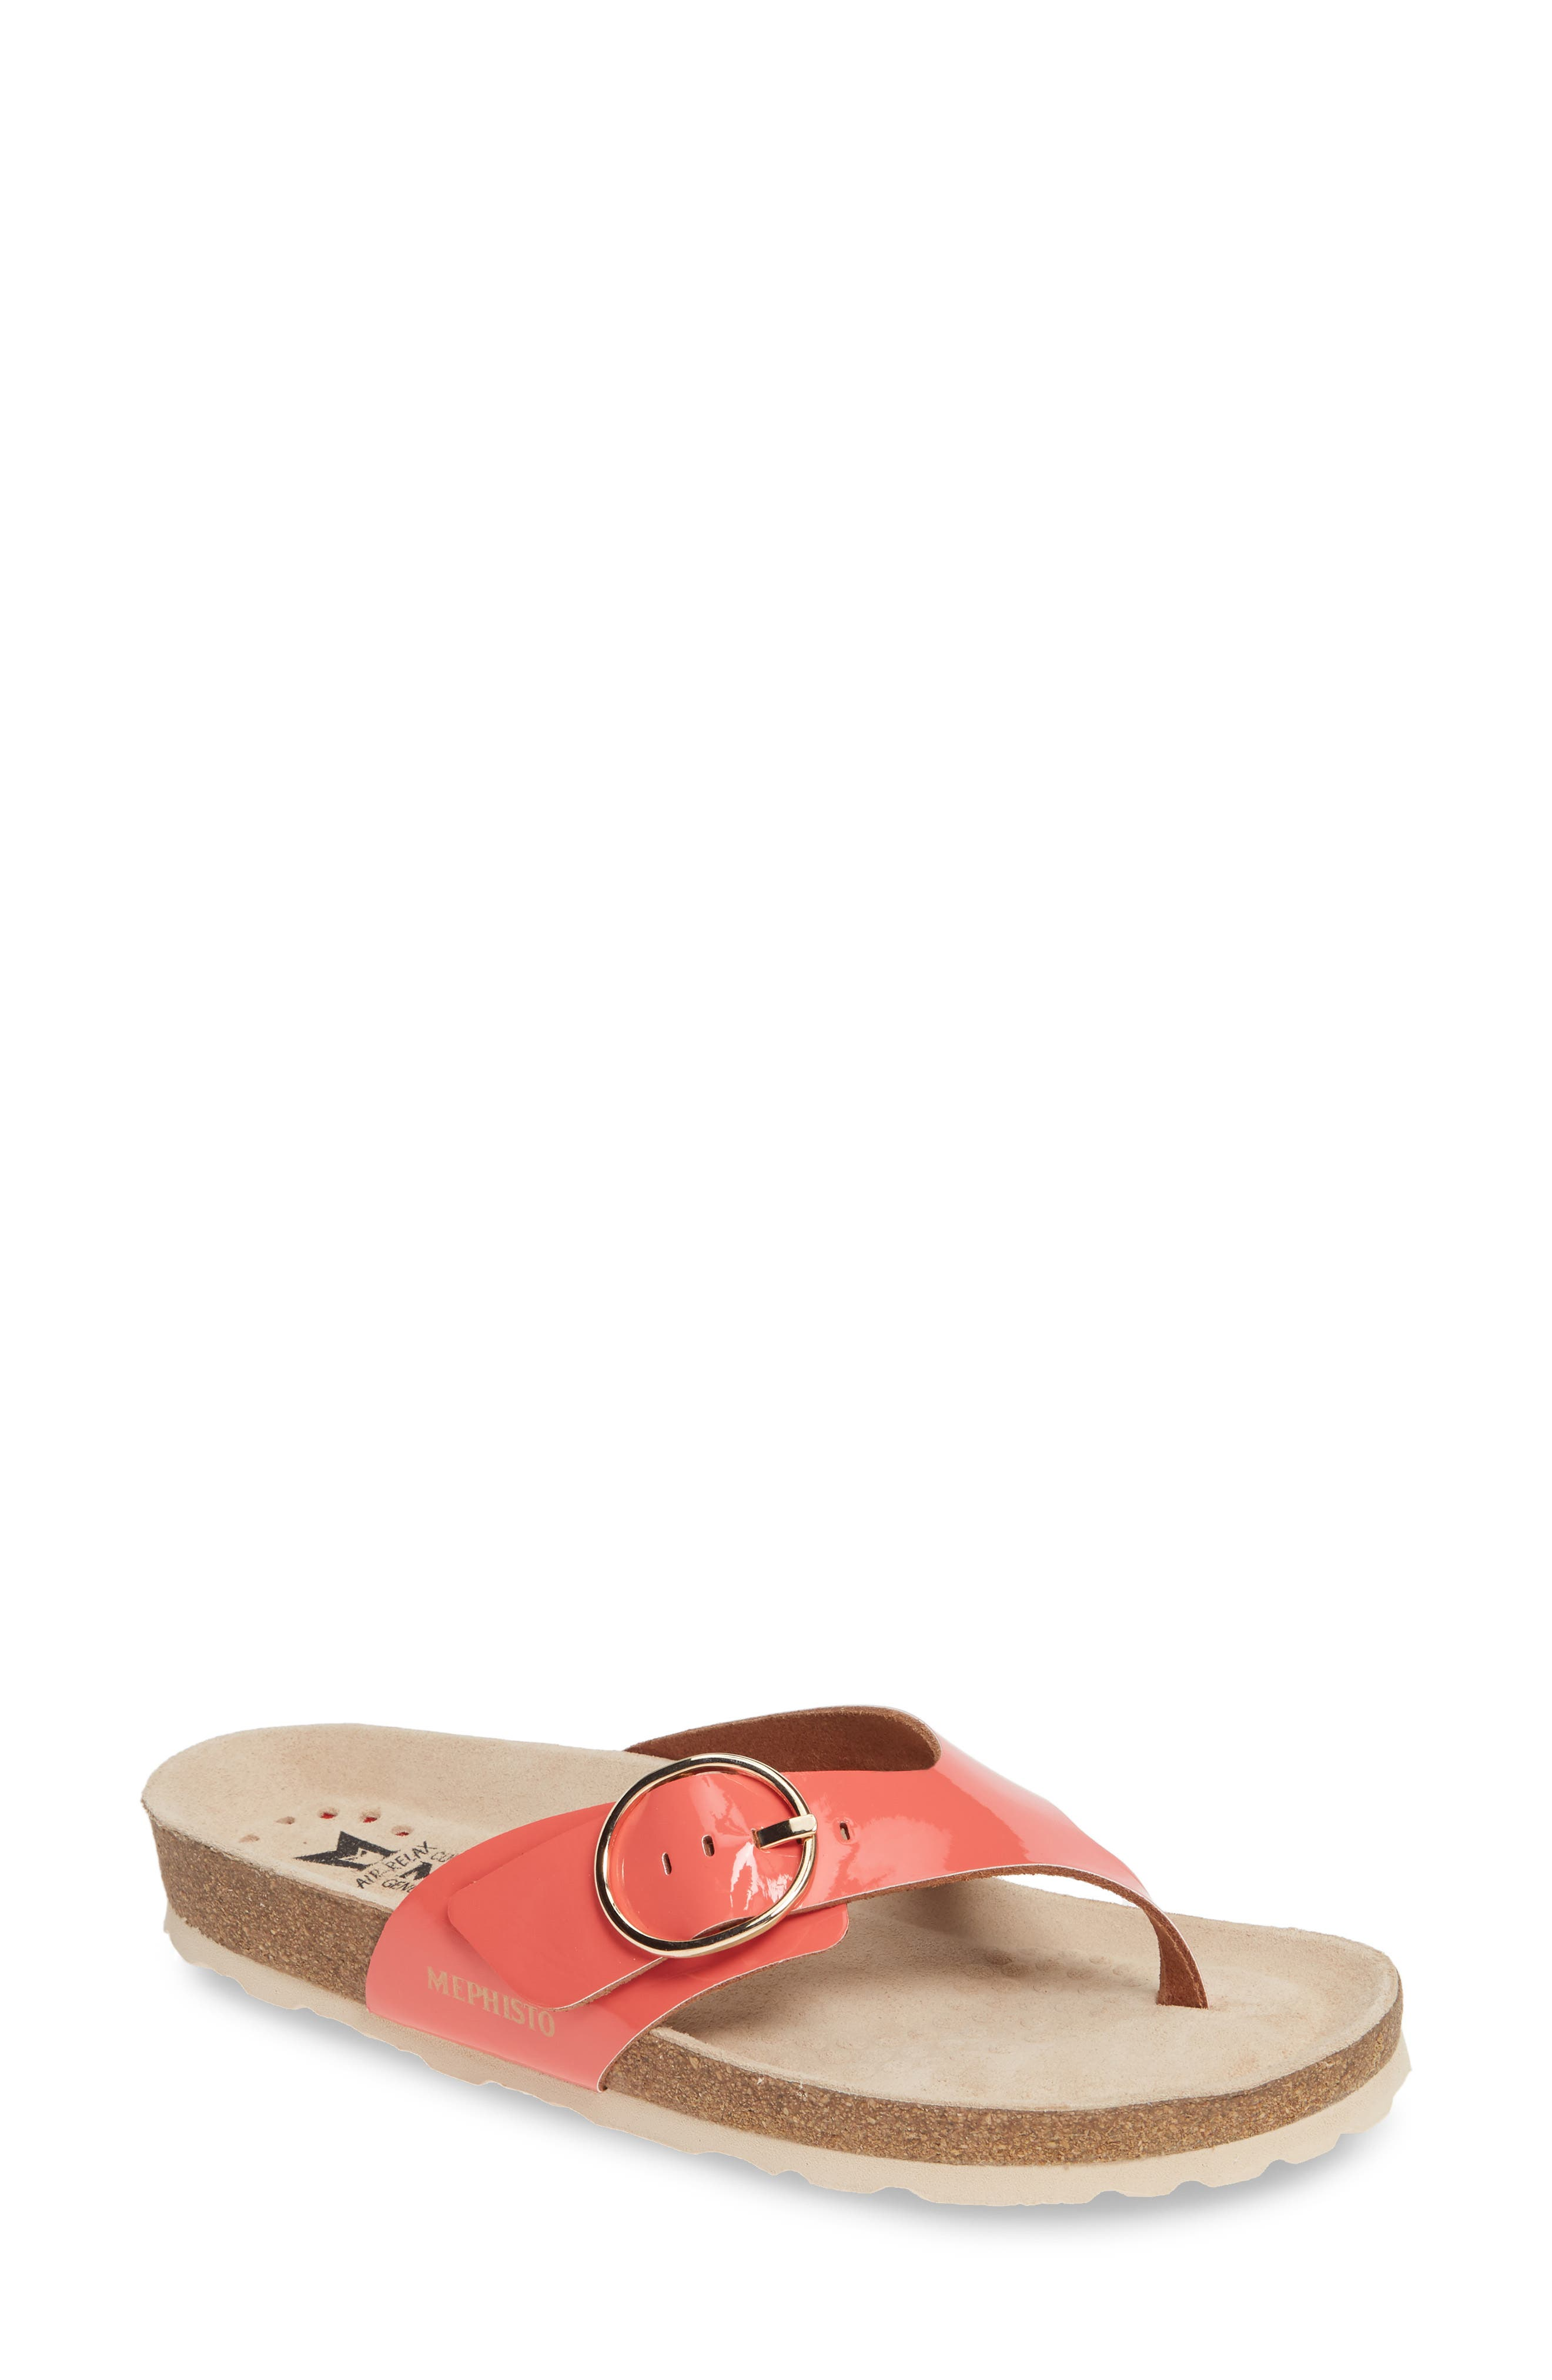 MEPHISTO, Natalina Slide Flip Flop, Main thumbnail 1, color, CORAL PATENT LEATHER